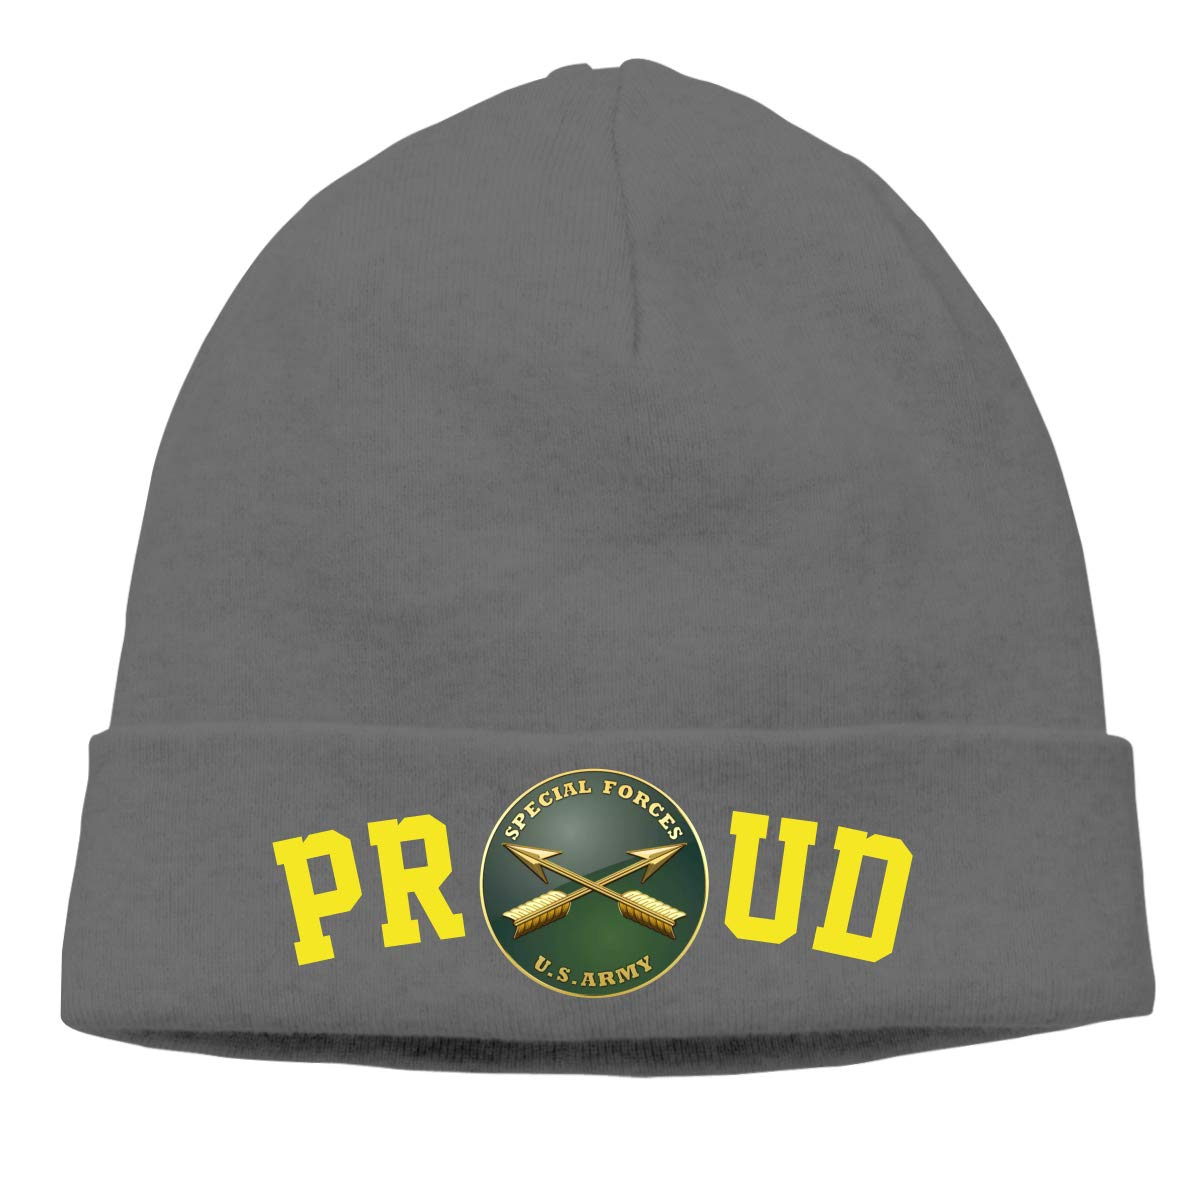 fa8e3483b99 Proud US Army Special Forces Mens Beanie Cap Skull Cap Winter Warm Knitting  Hats. at Amazon Men s Clothing store